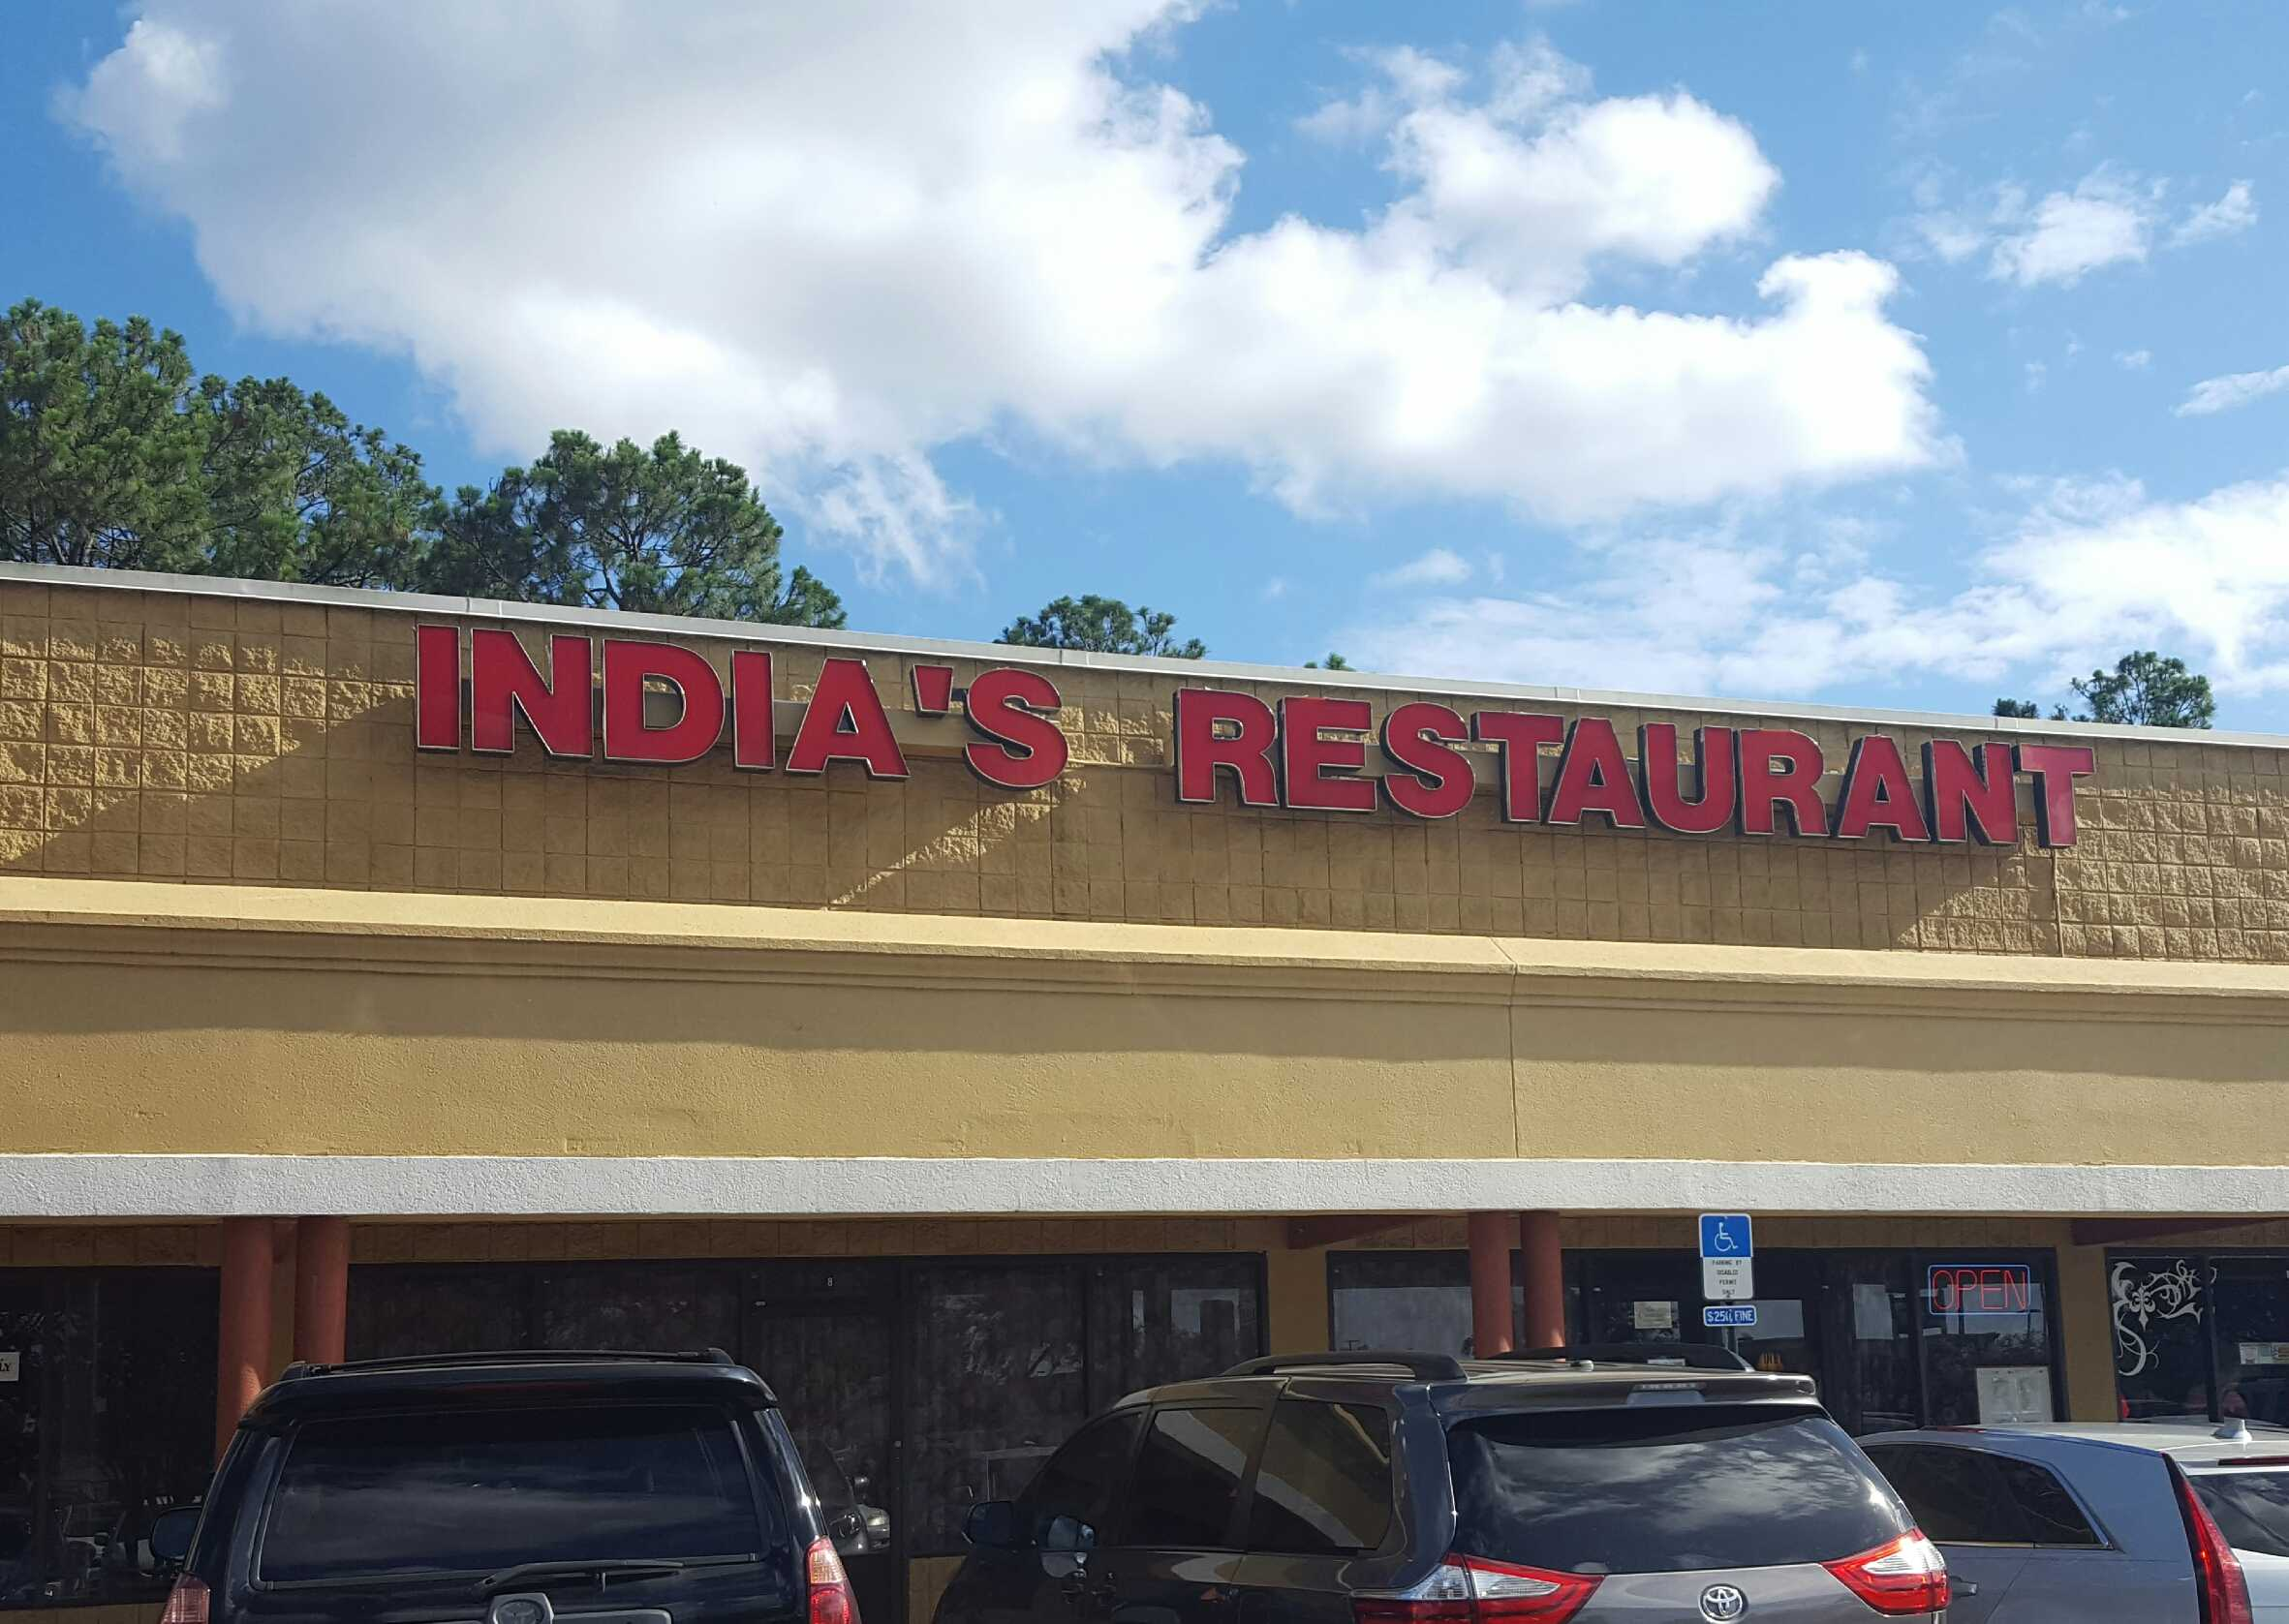 Local Eatery of the Week: India's Restaurant